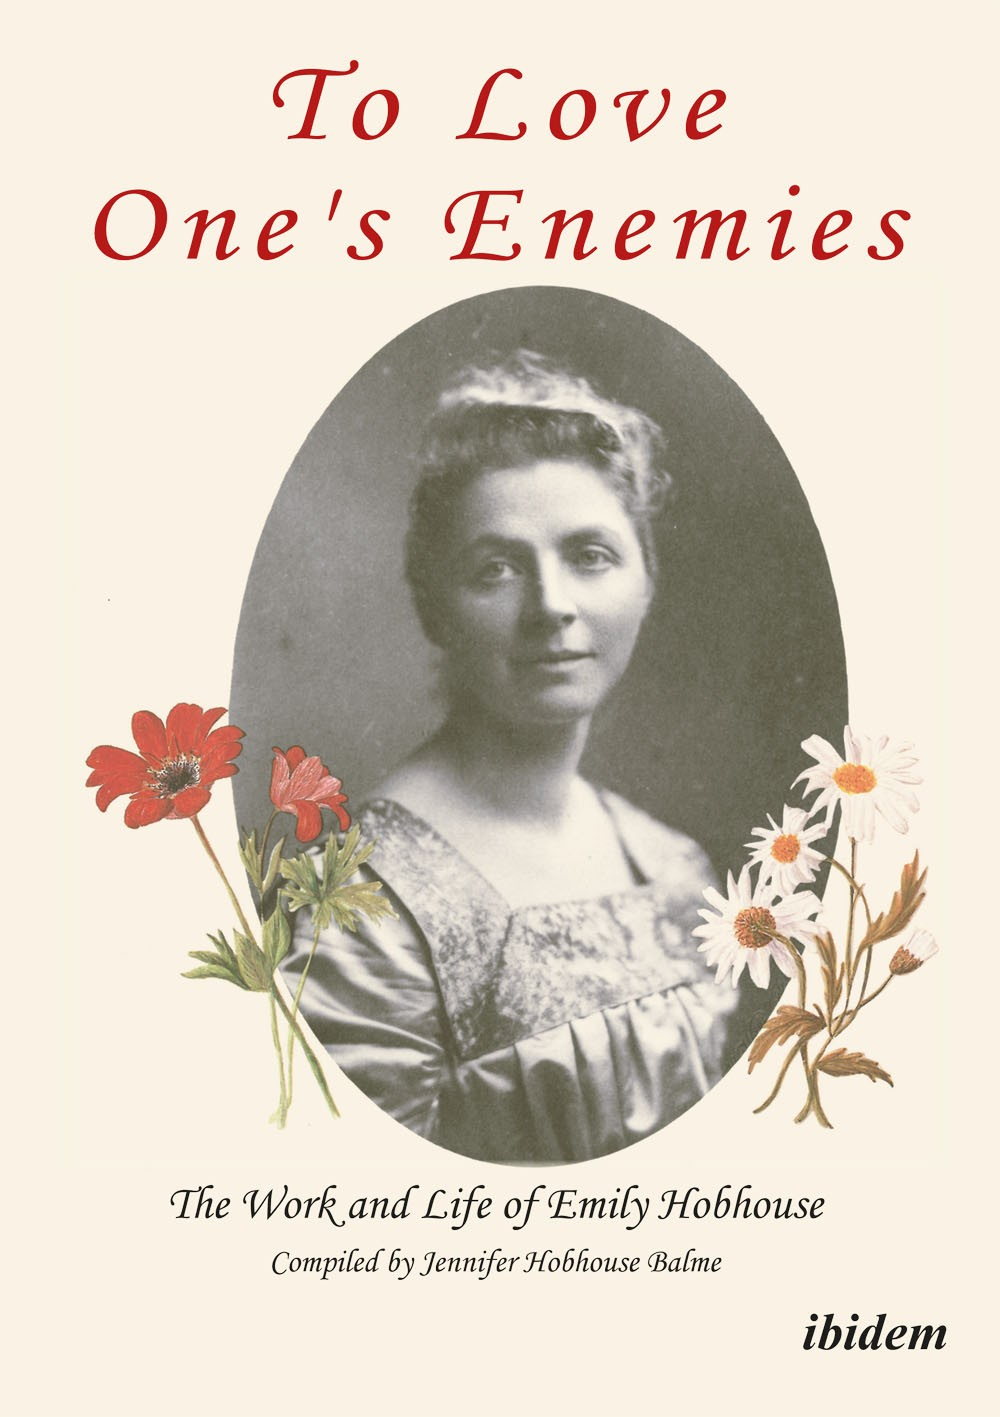 To Love One's Enemies: The work and life of Emily Hobhouse compiled from letters and writings, newspaper cuttings and official documents